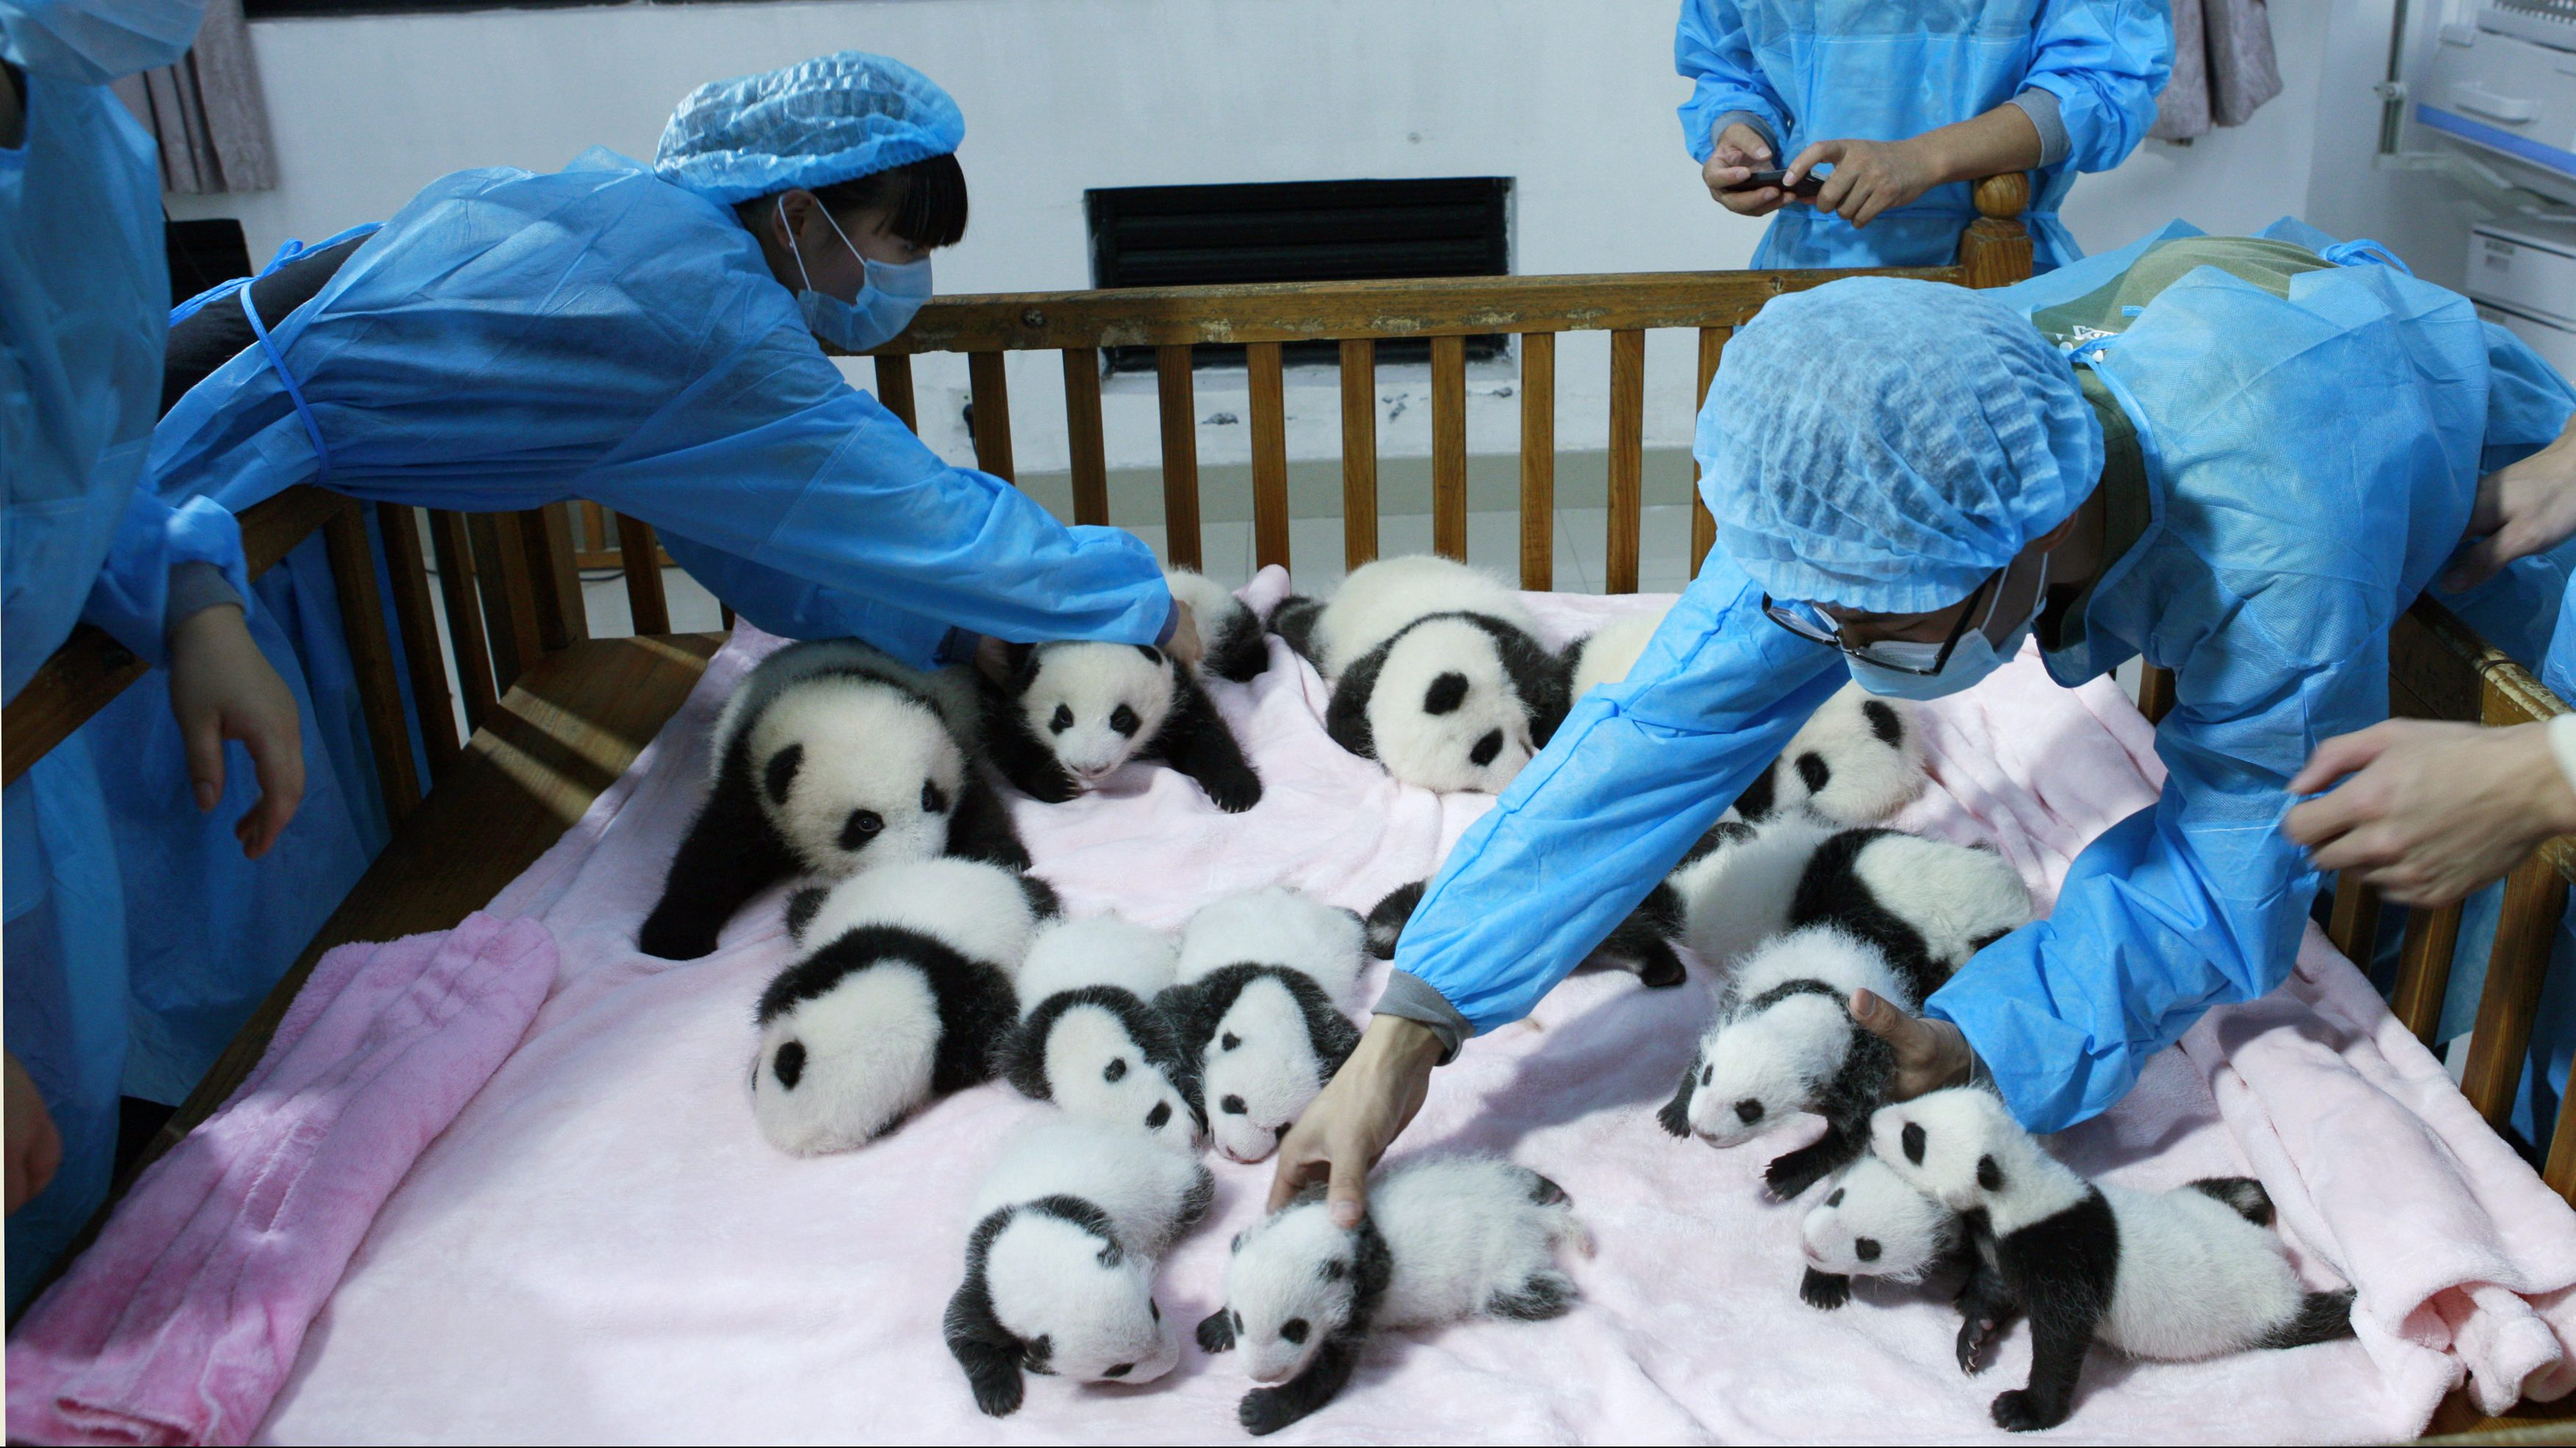 Giant Panda population is on the rise, and no longer endangered.